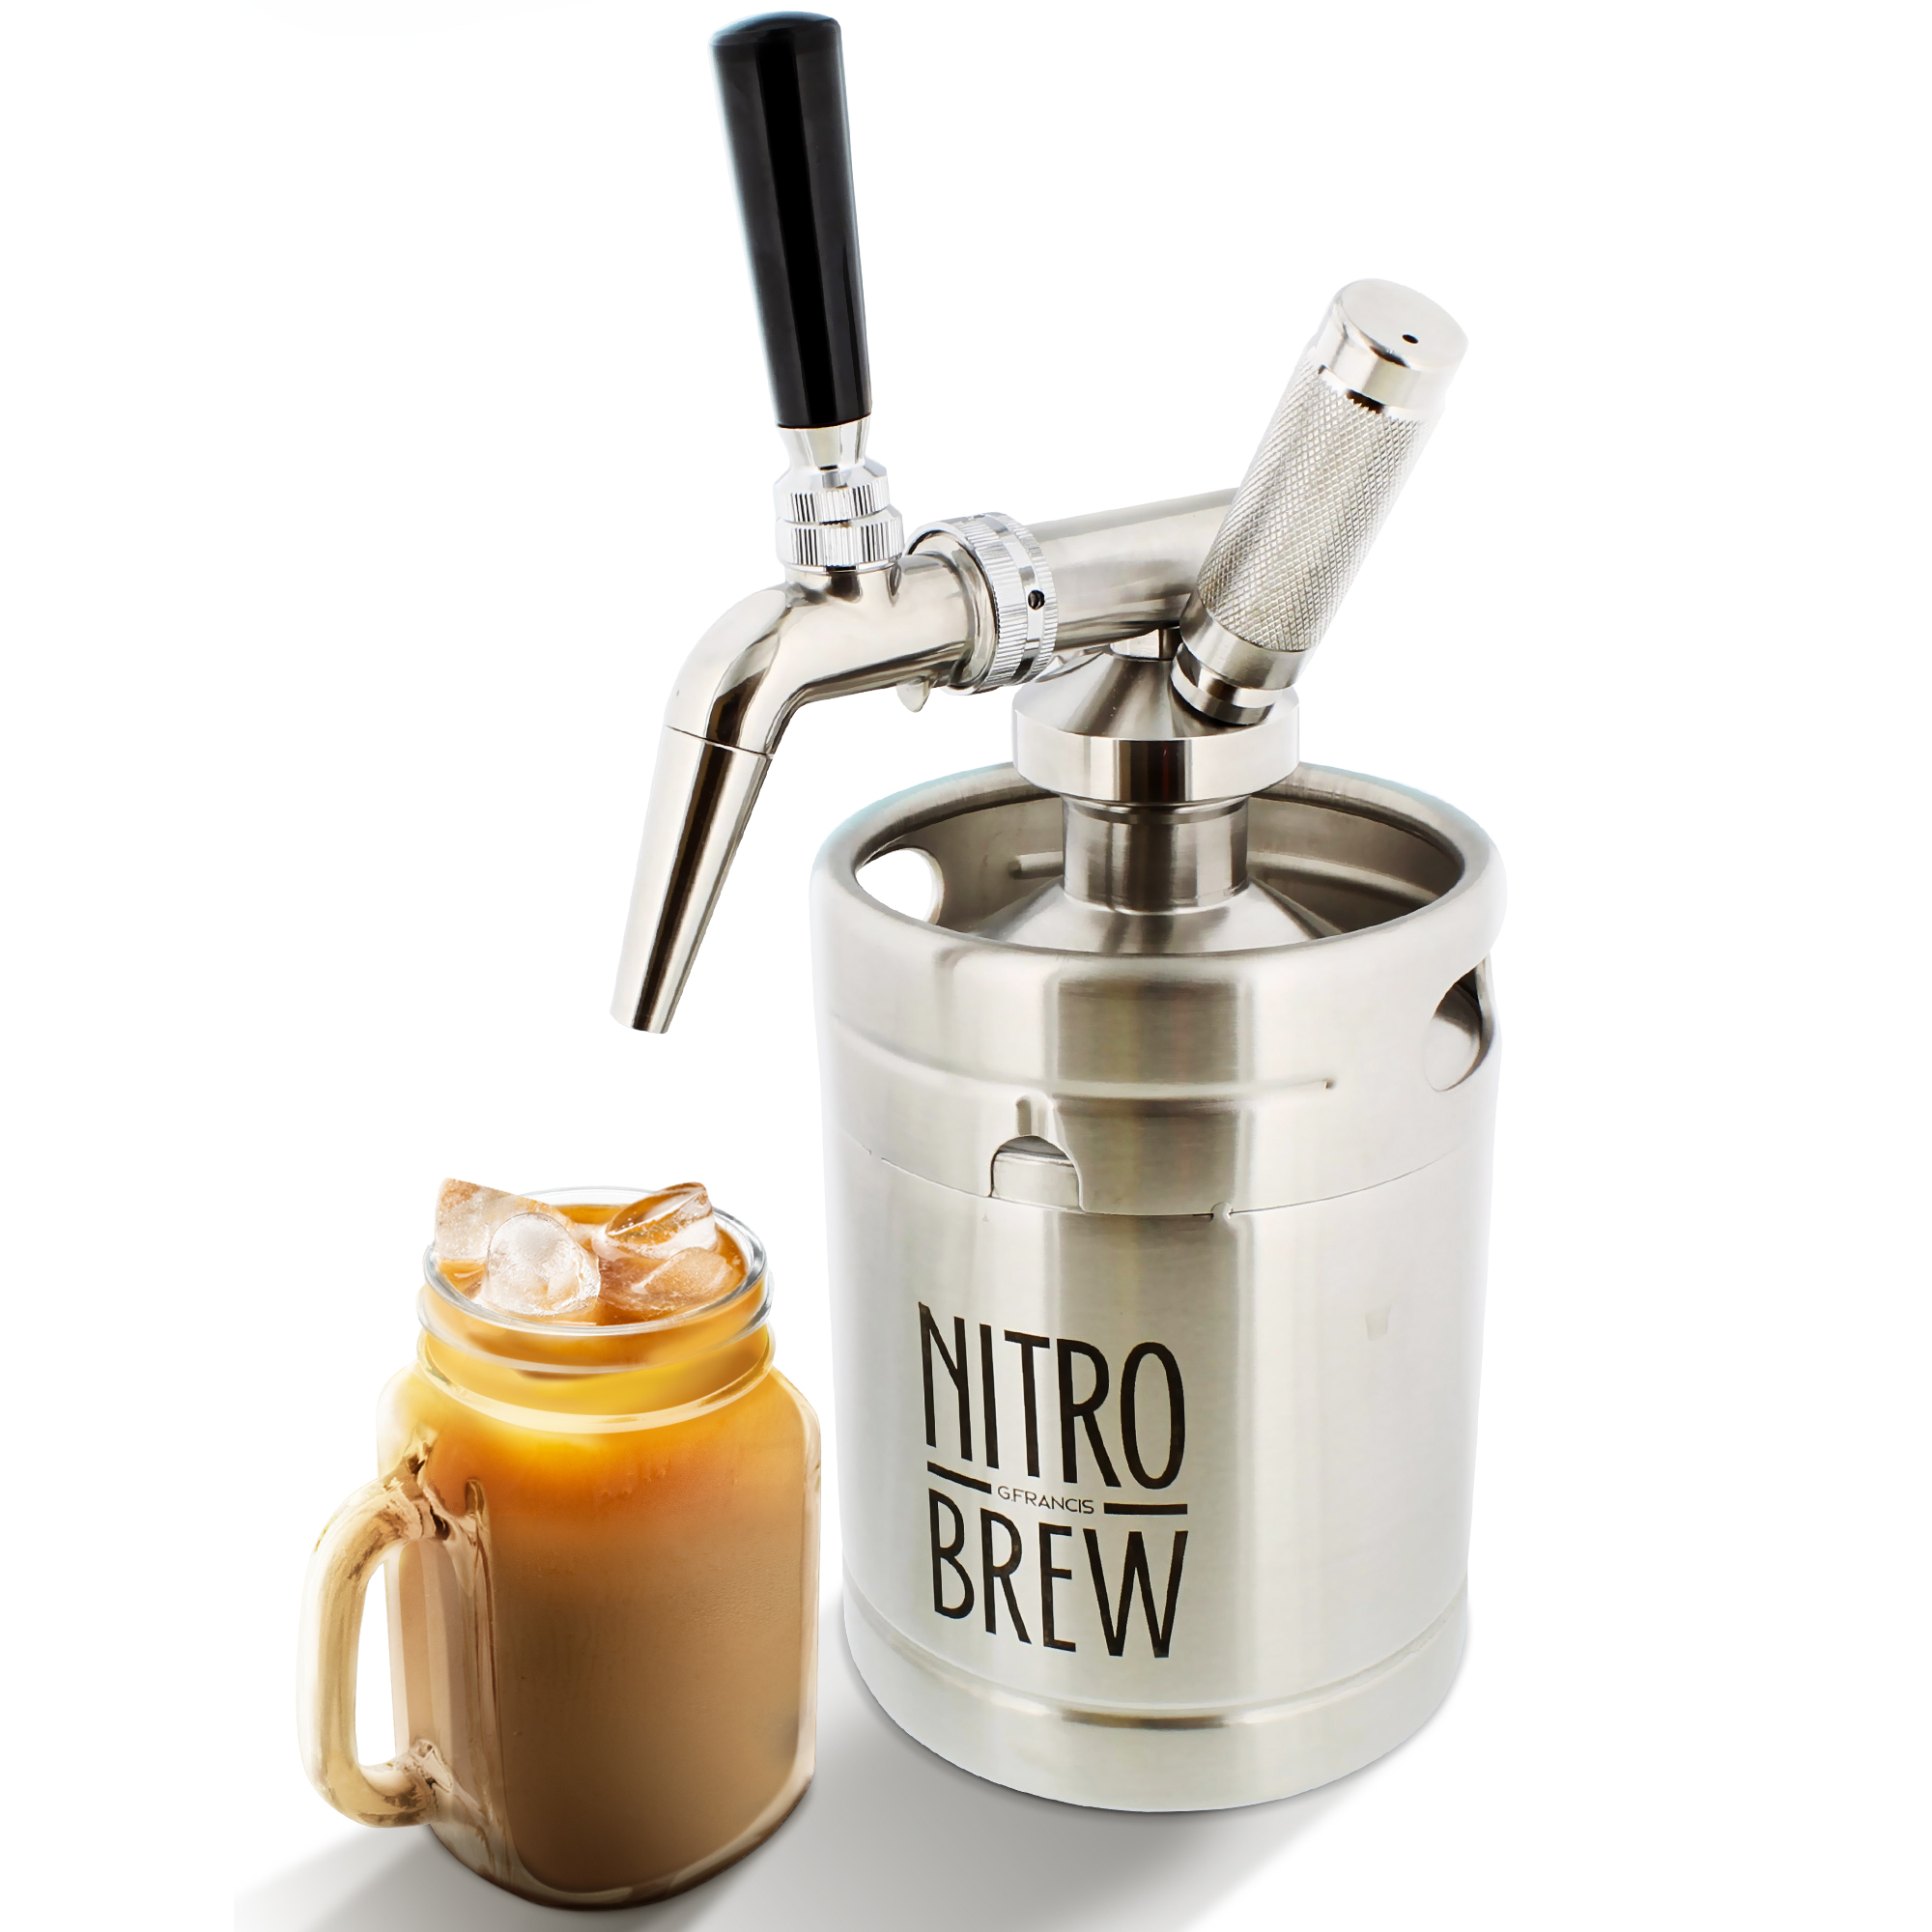 Get Your Favourite Nitro Cold Brew Coffee At Home